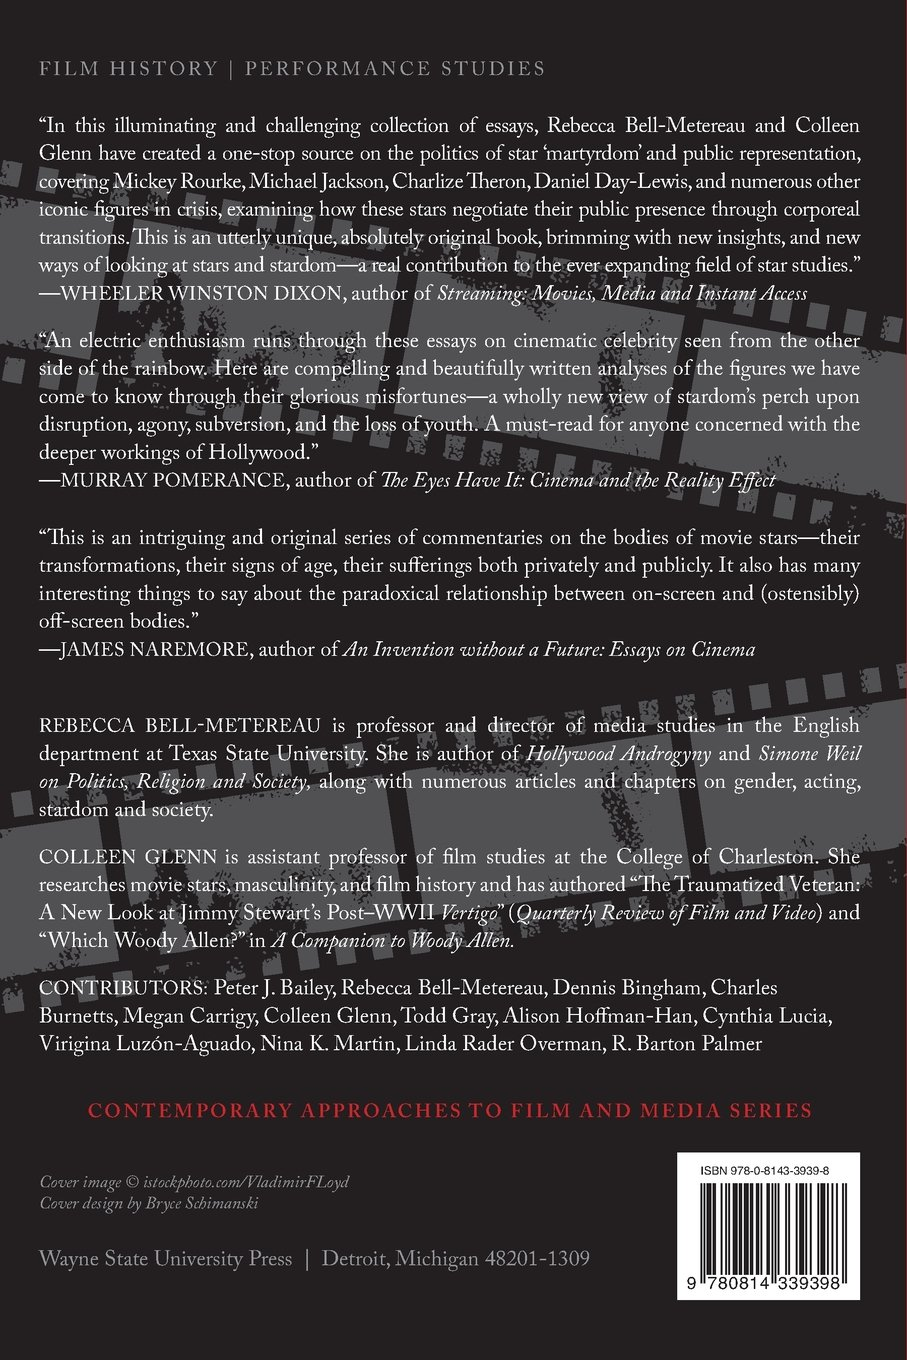 com star bodies and the erotics of suffering contemporary  com star bodies and the erotics of suffering contemporary approaches to film and media series 9780814339398 rebecca bell metereau